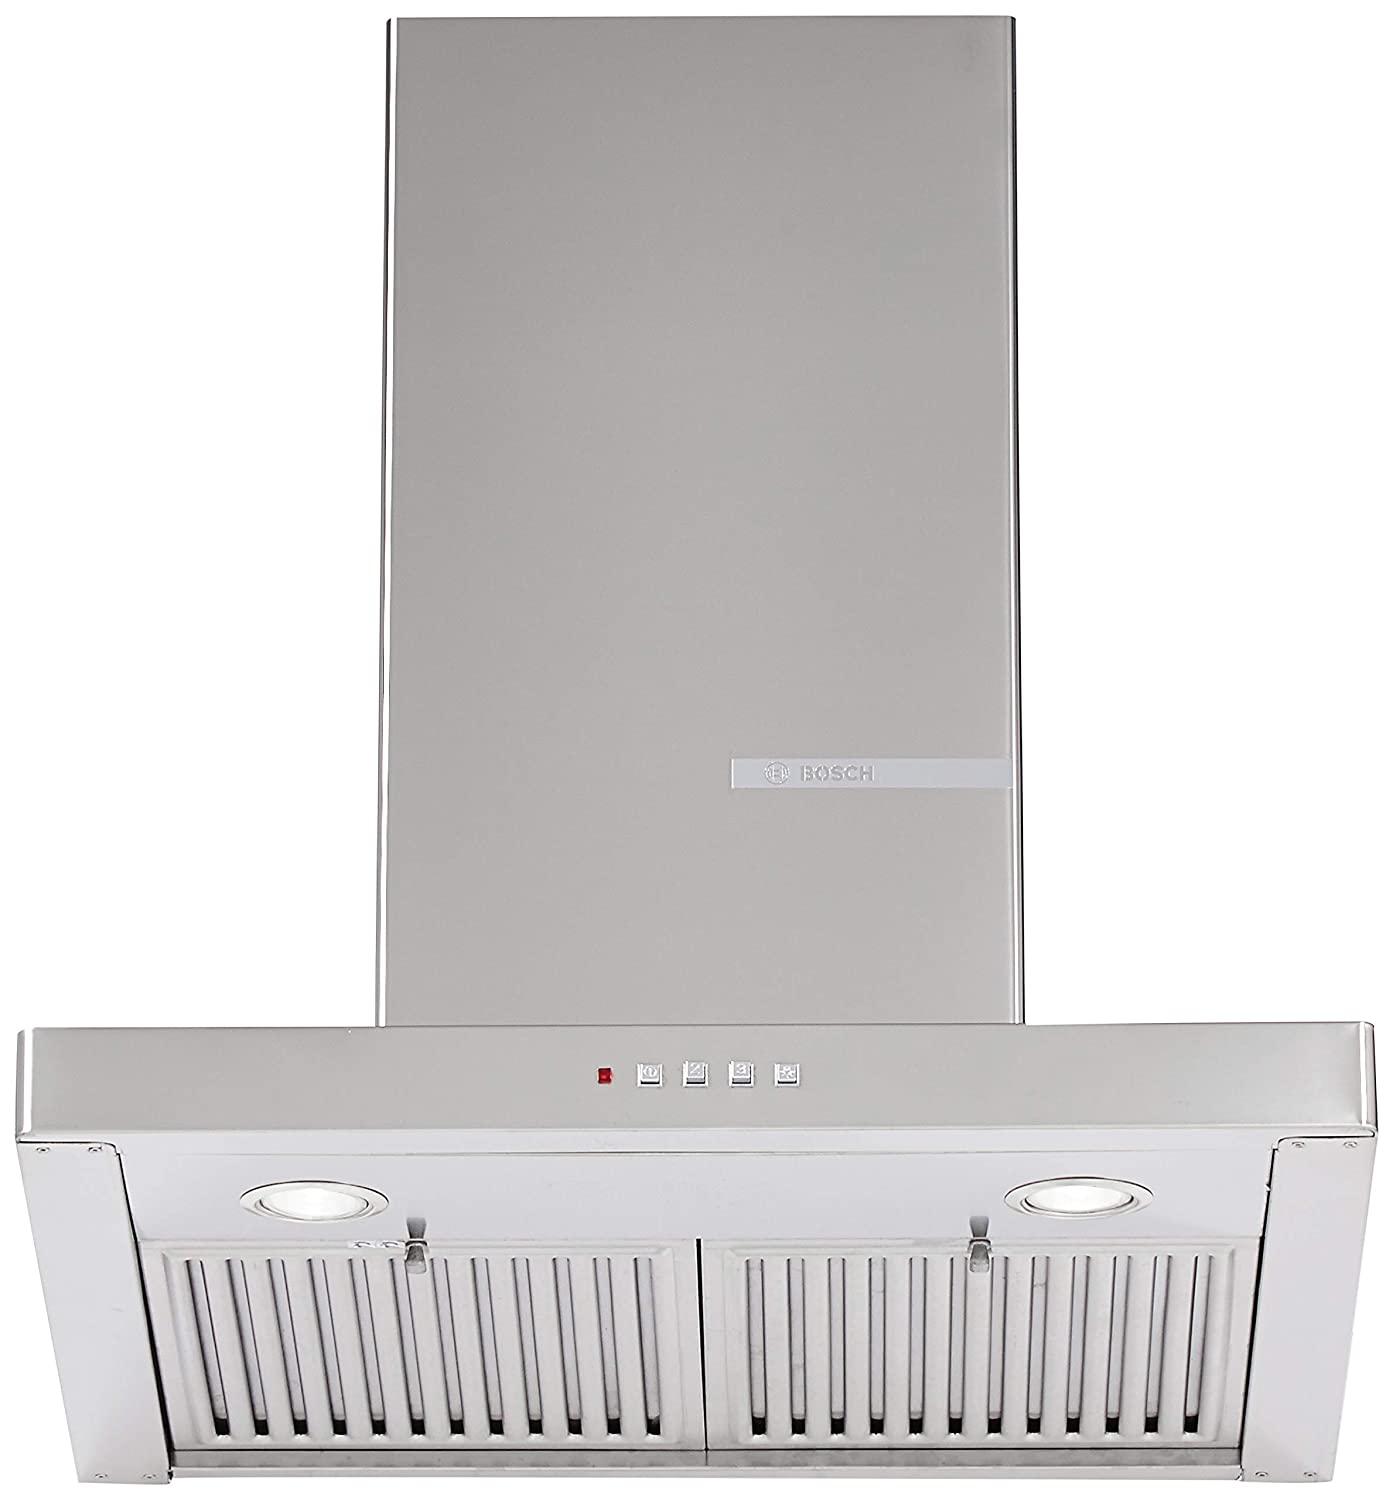 bosch chimney price under 25k